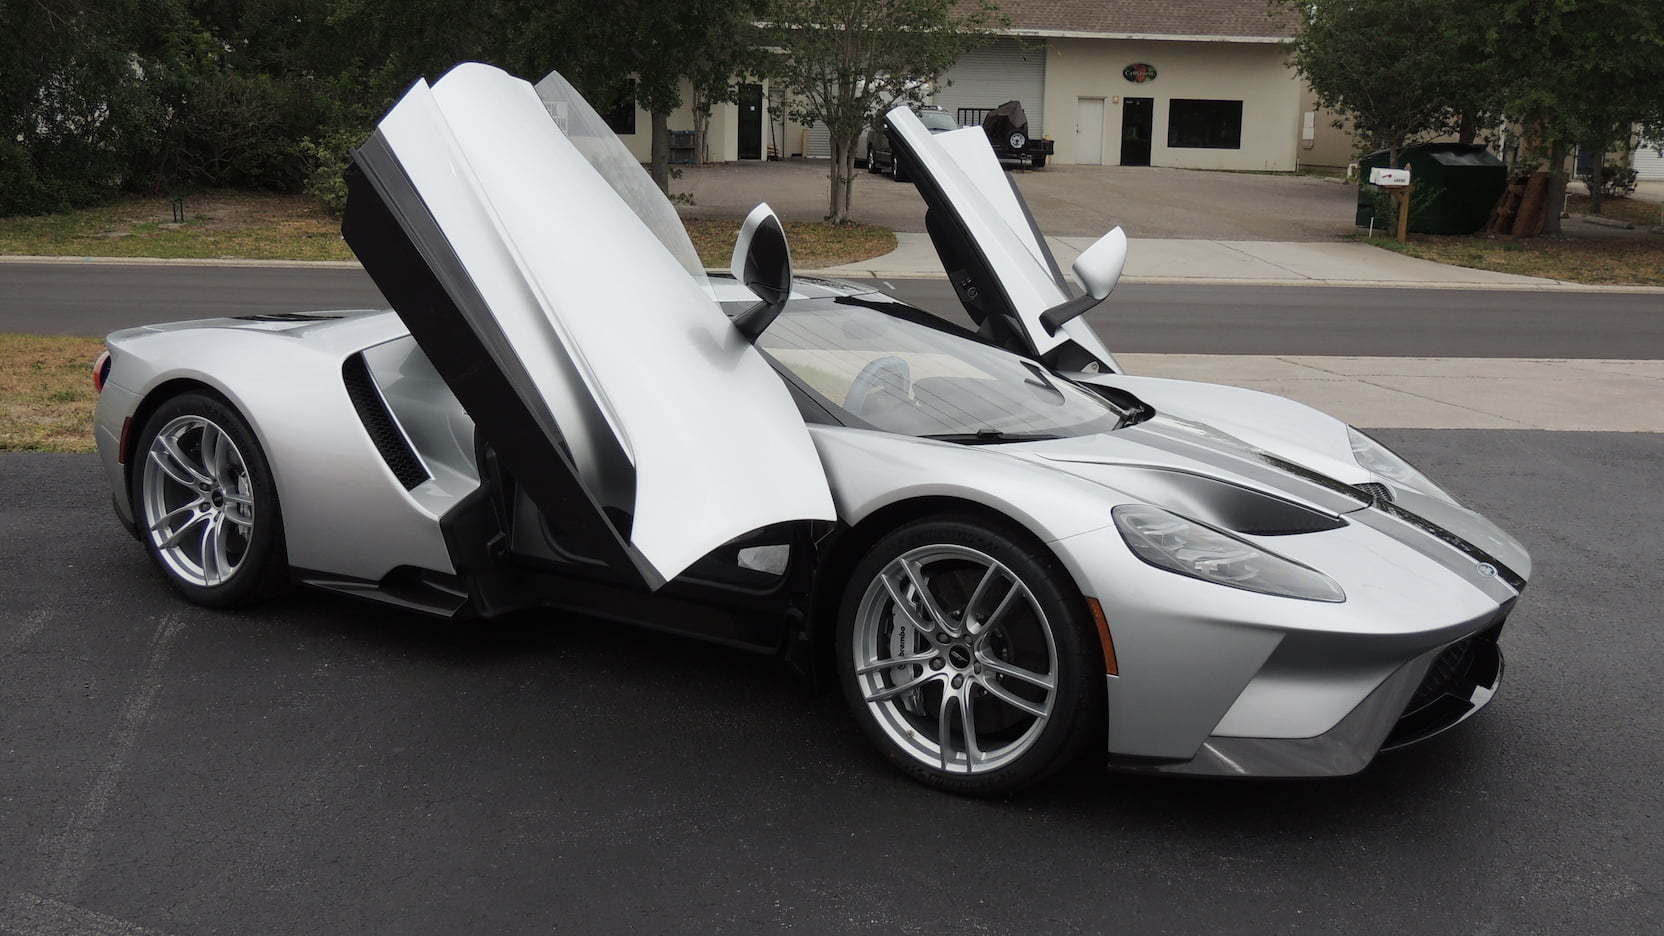 You Can Buy Yourself This Ford Gt This Weekend But You Shouldnt Be Able To